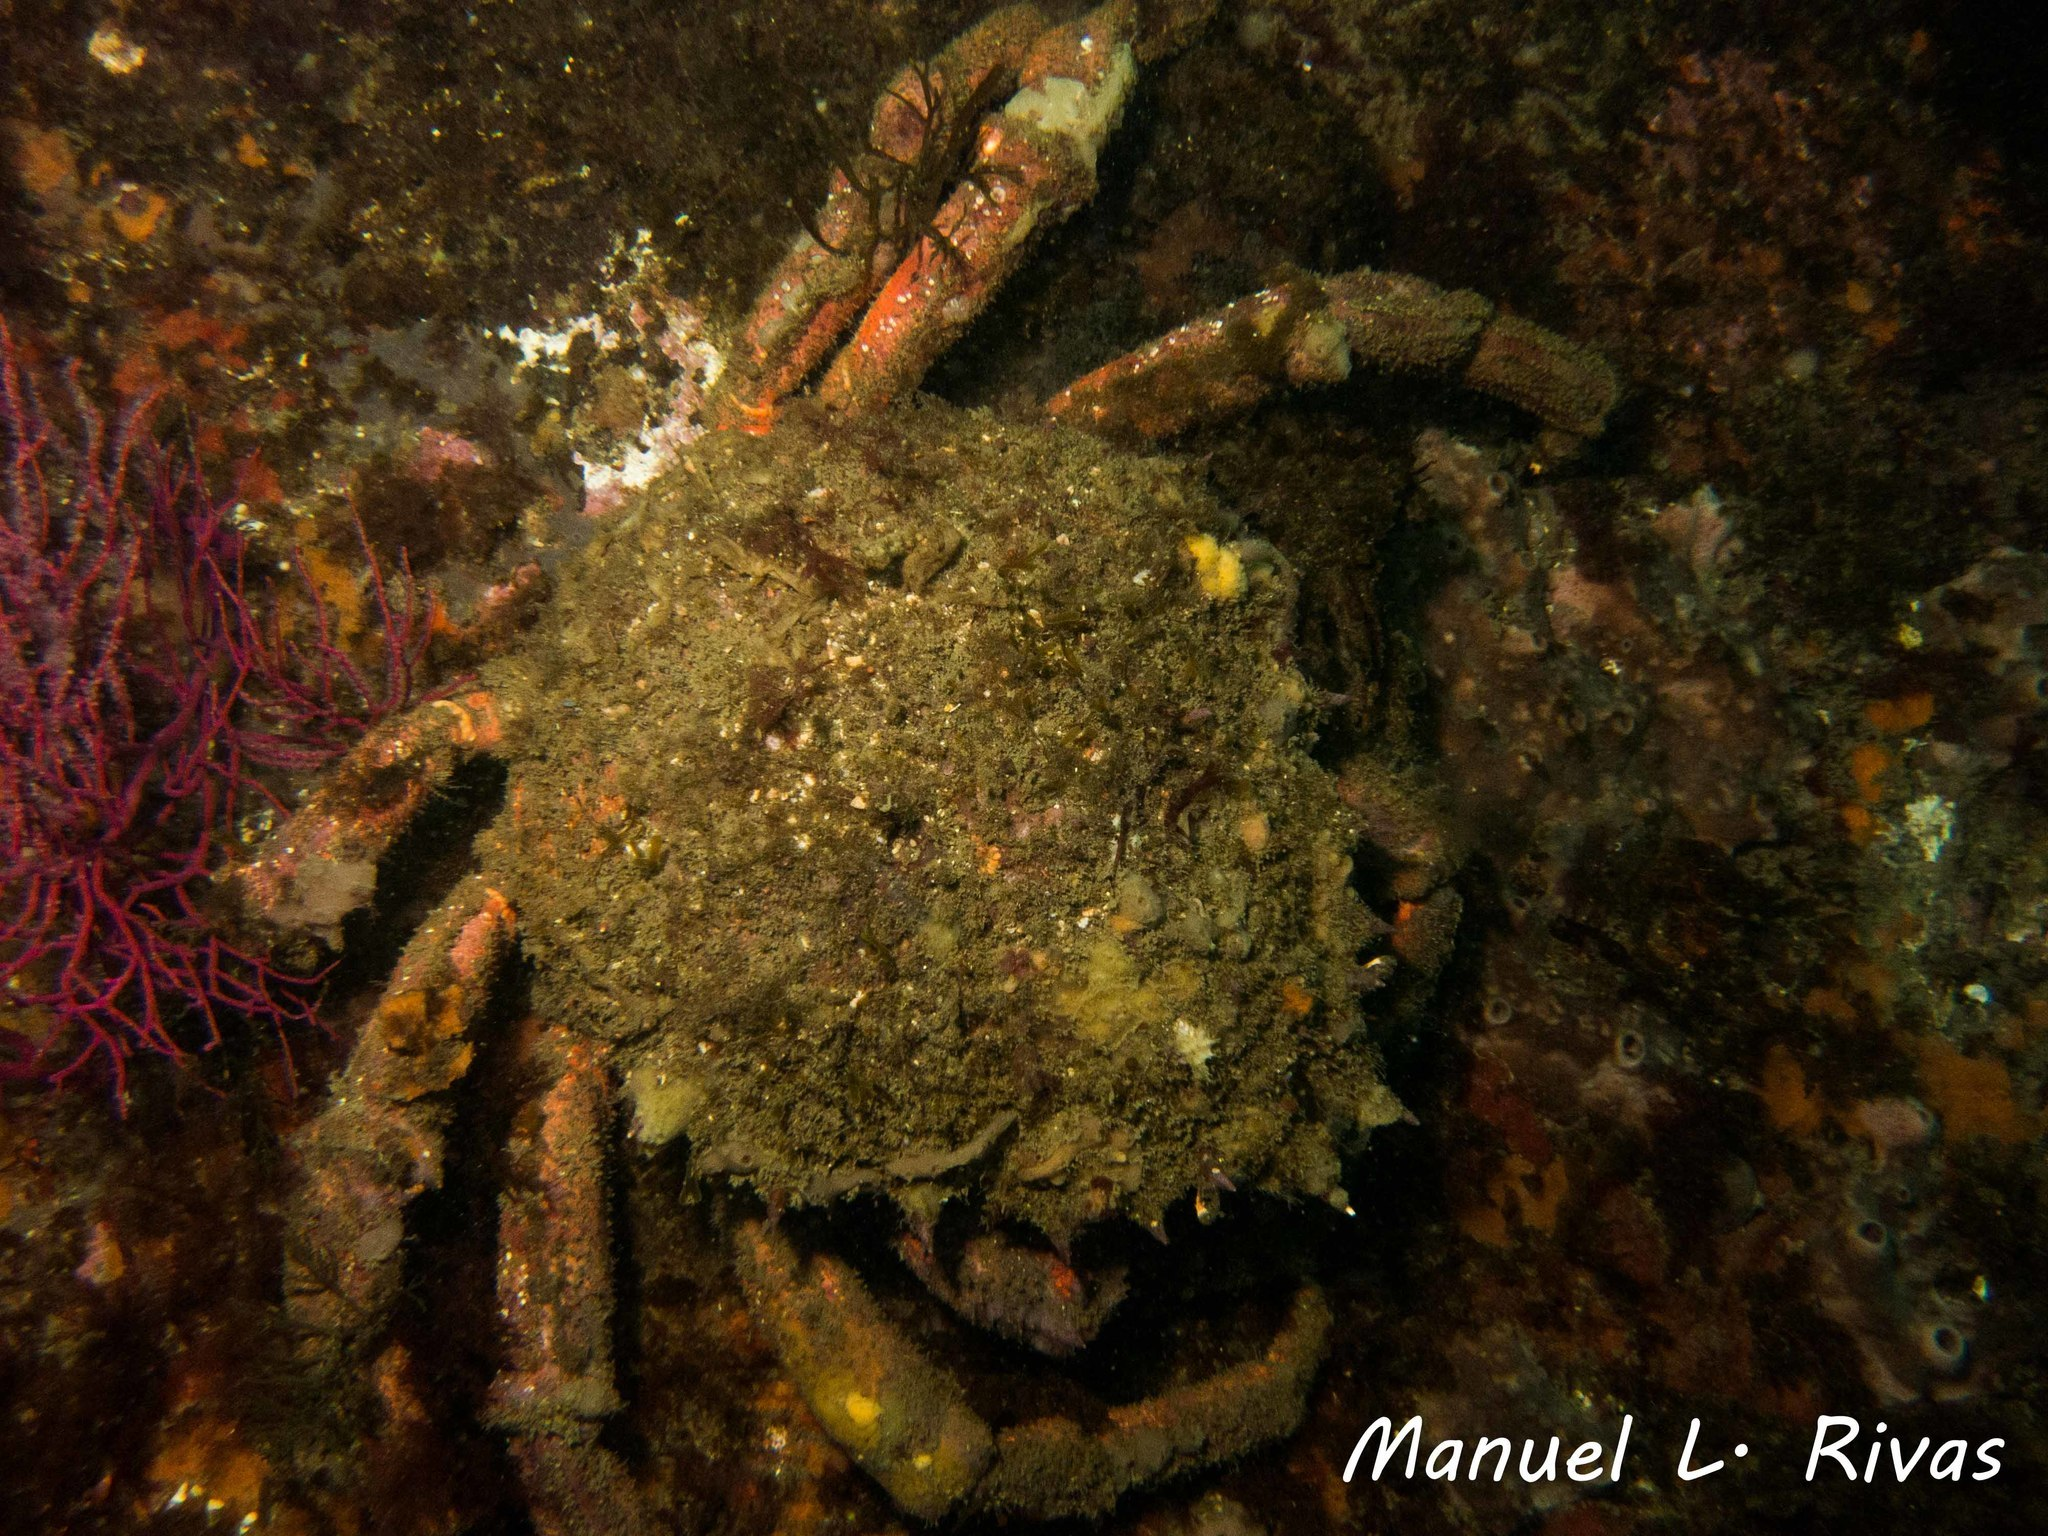 Image of Mediterranean spider crab